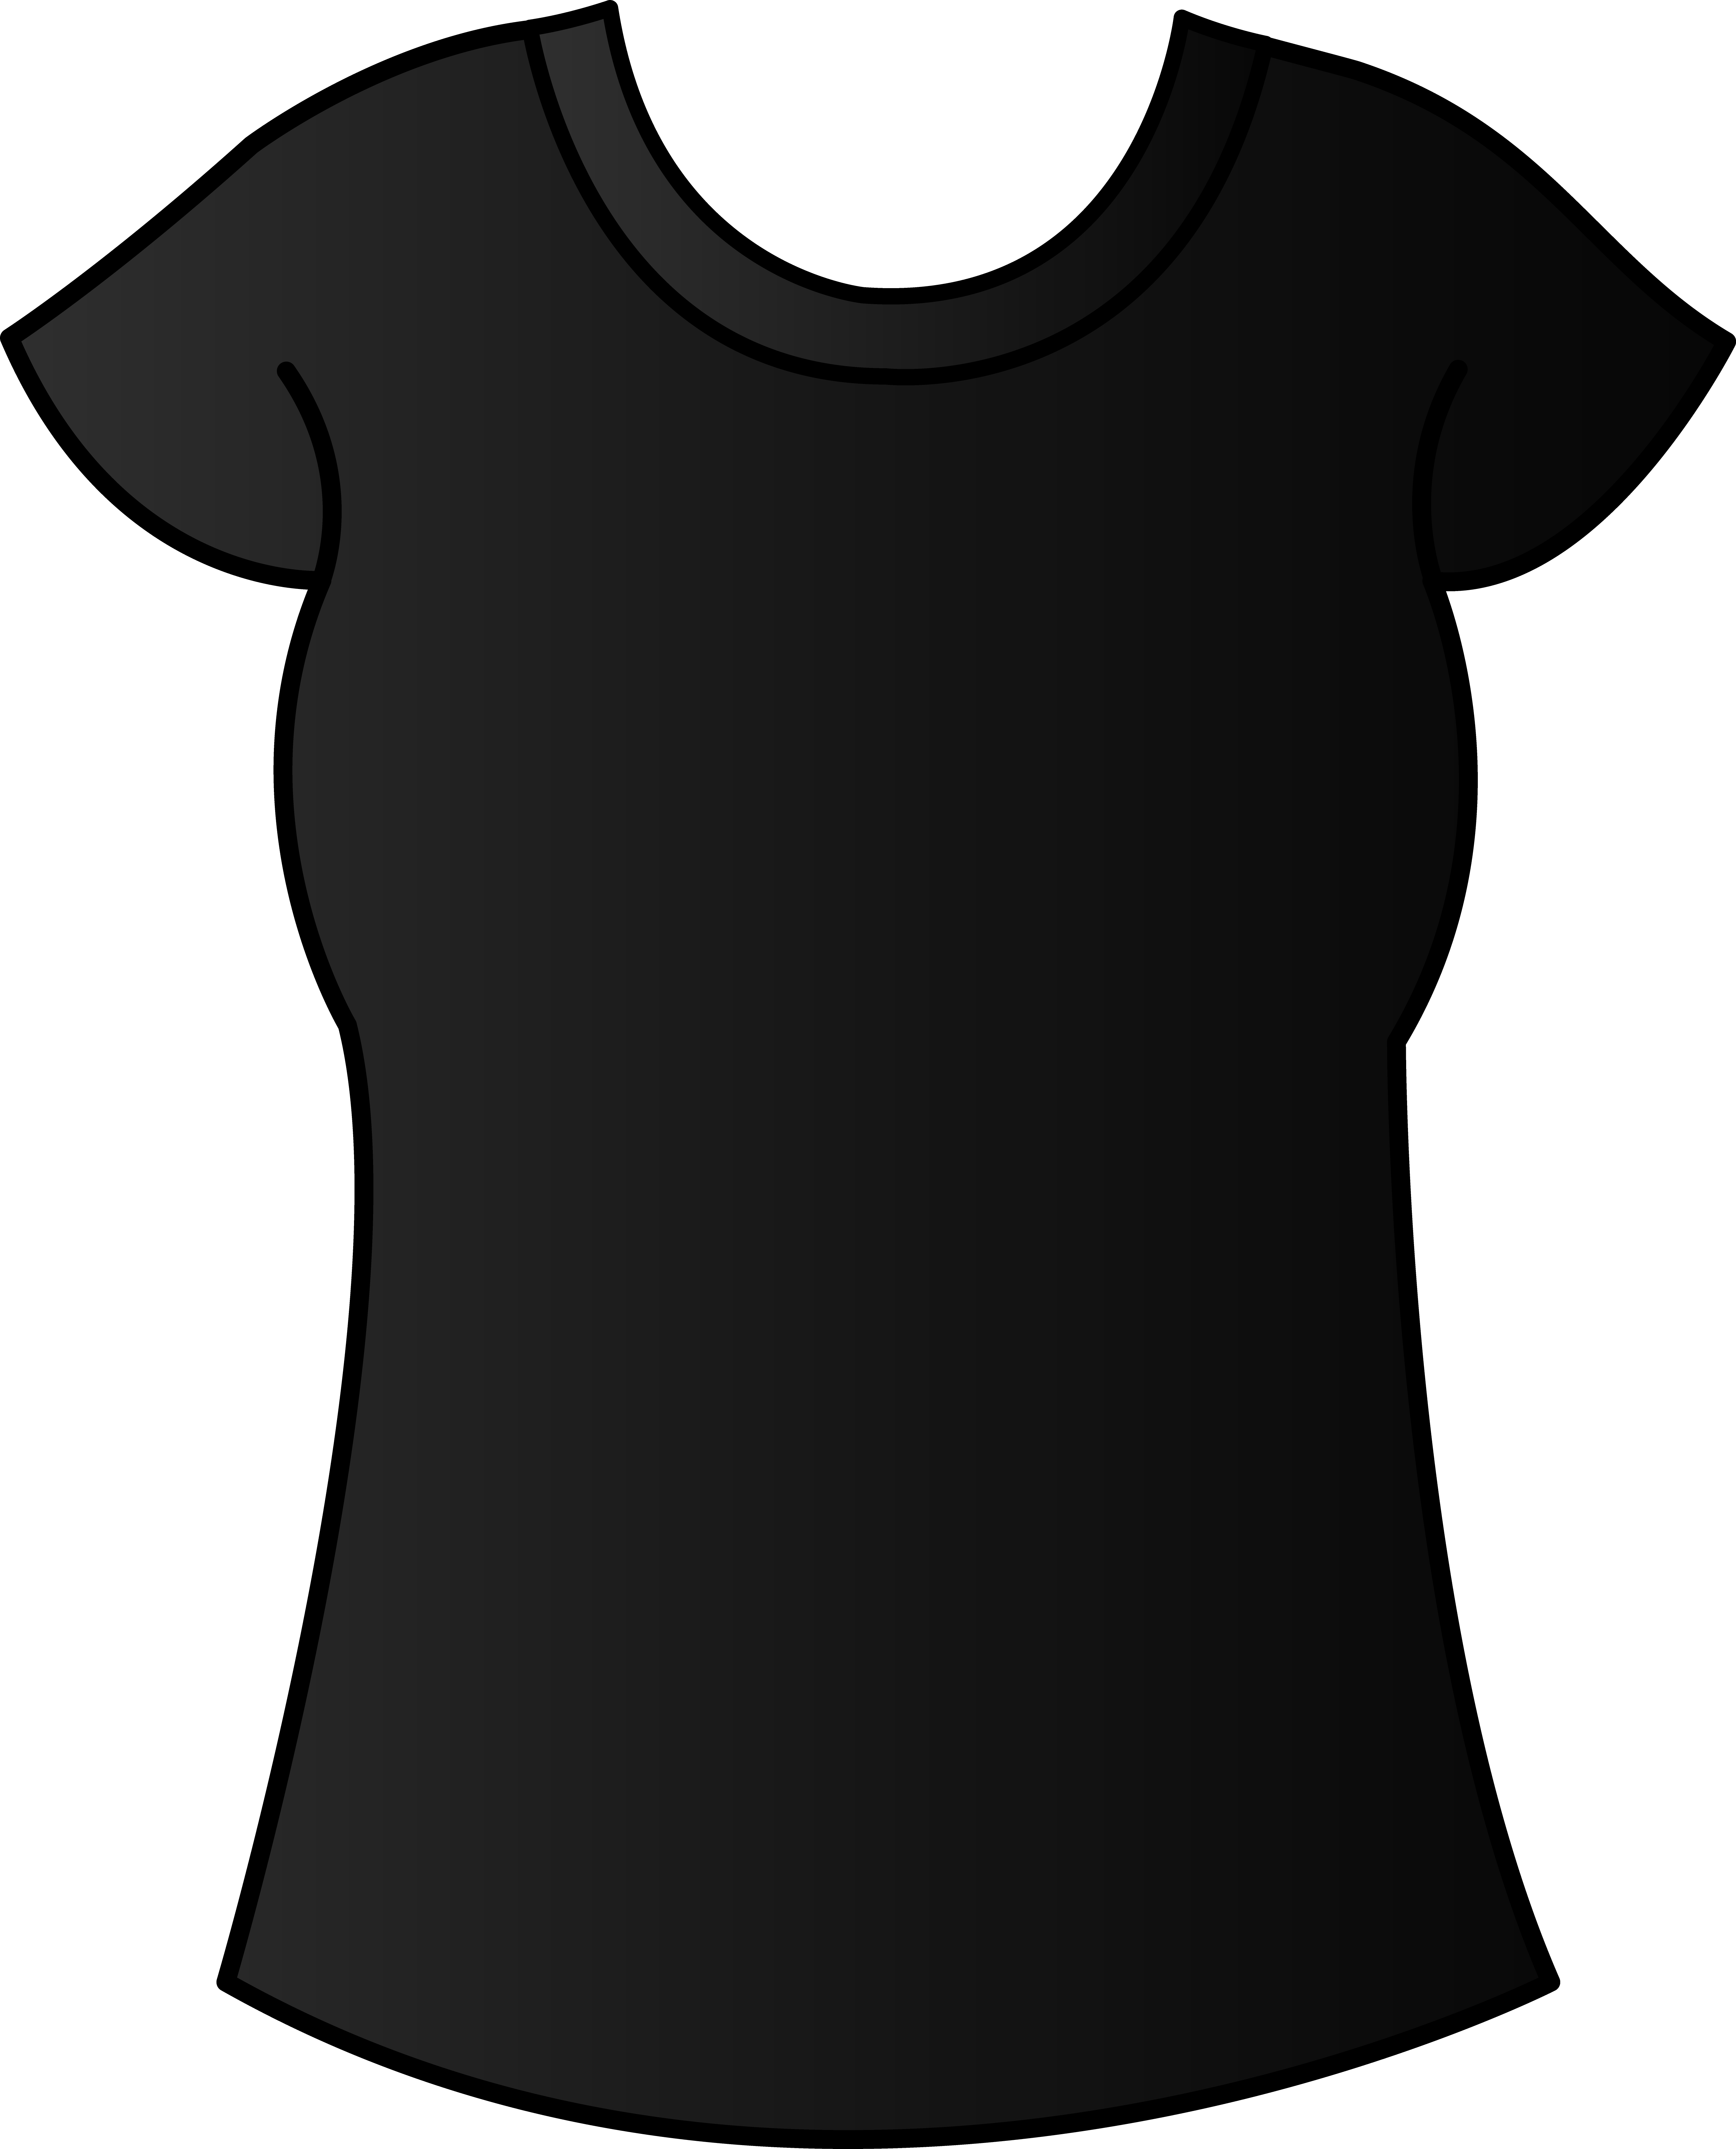 Free Women Shirt Cliparts, Download Free Clip Art, Free Clip.